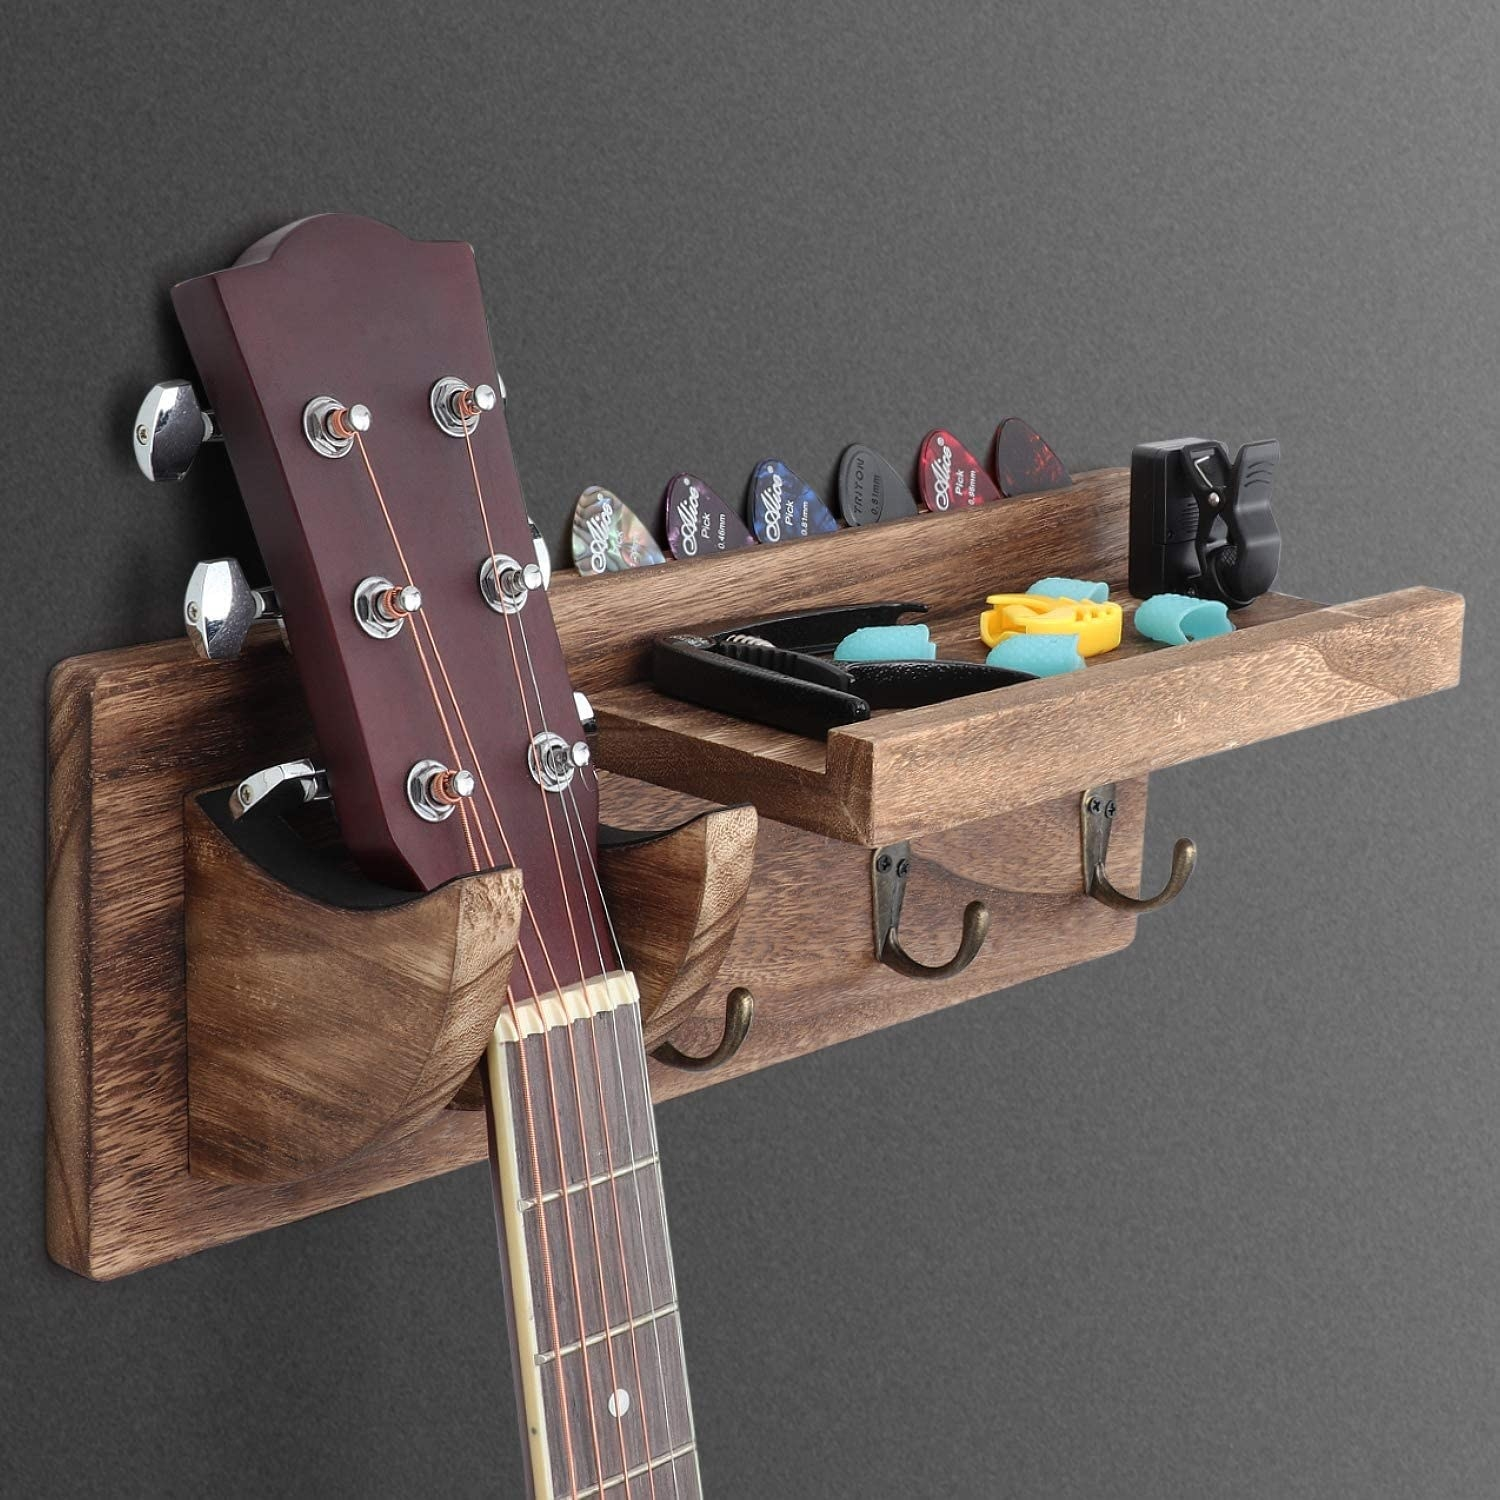 The guitar hanger holding a guitar, a capo, some fingerpicks, a clip on tuner, and some guitar picks